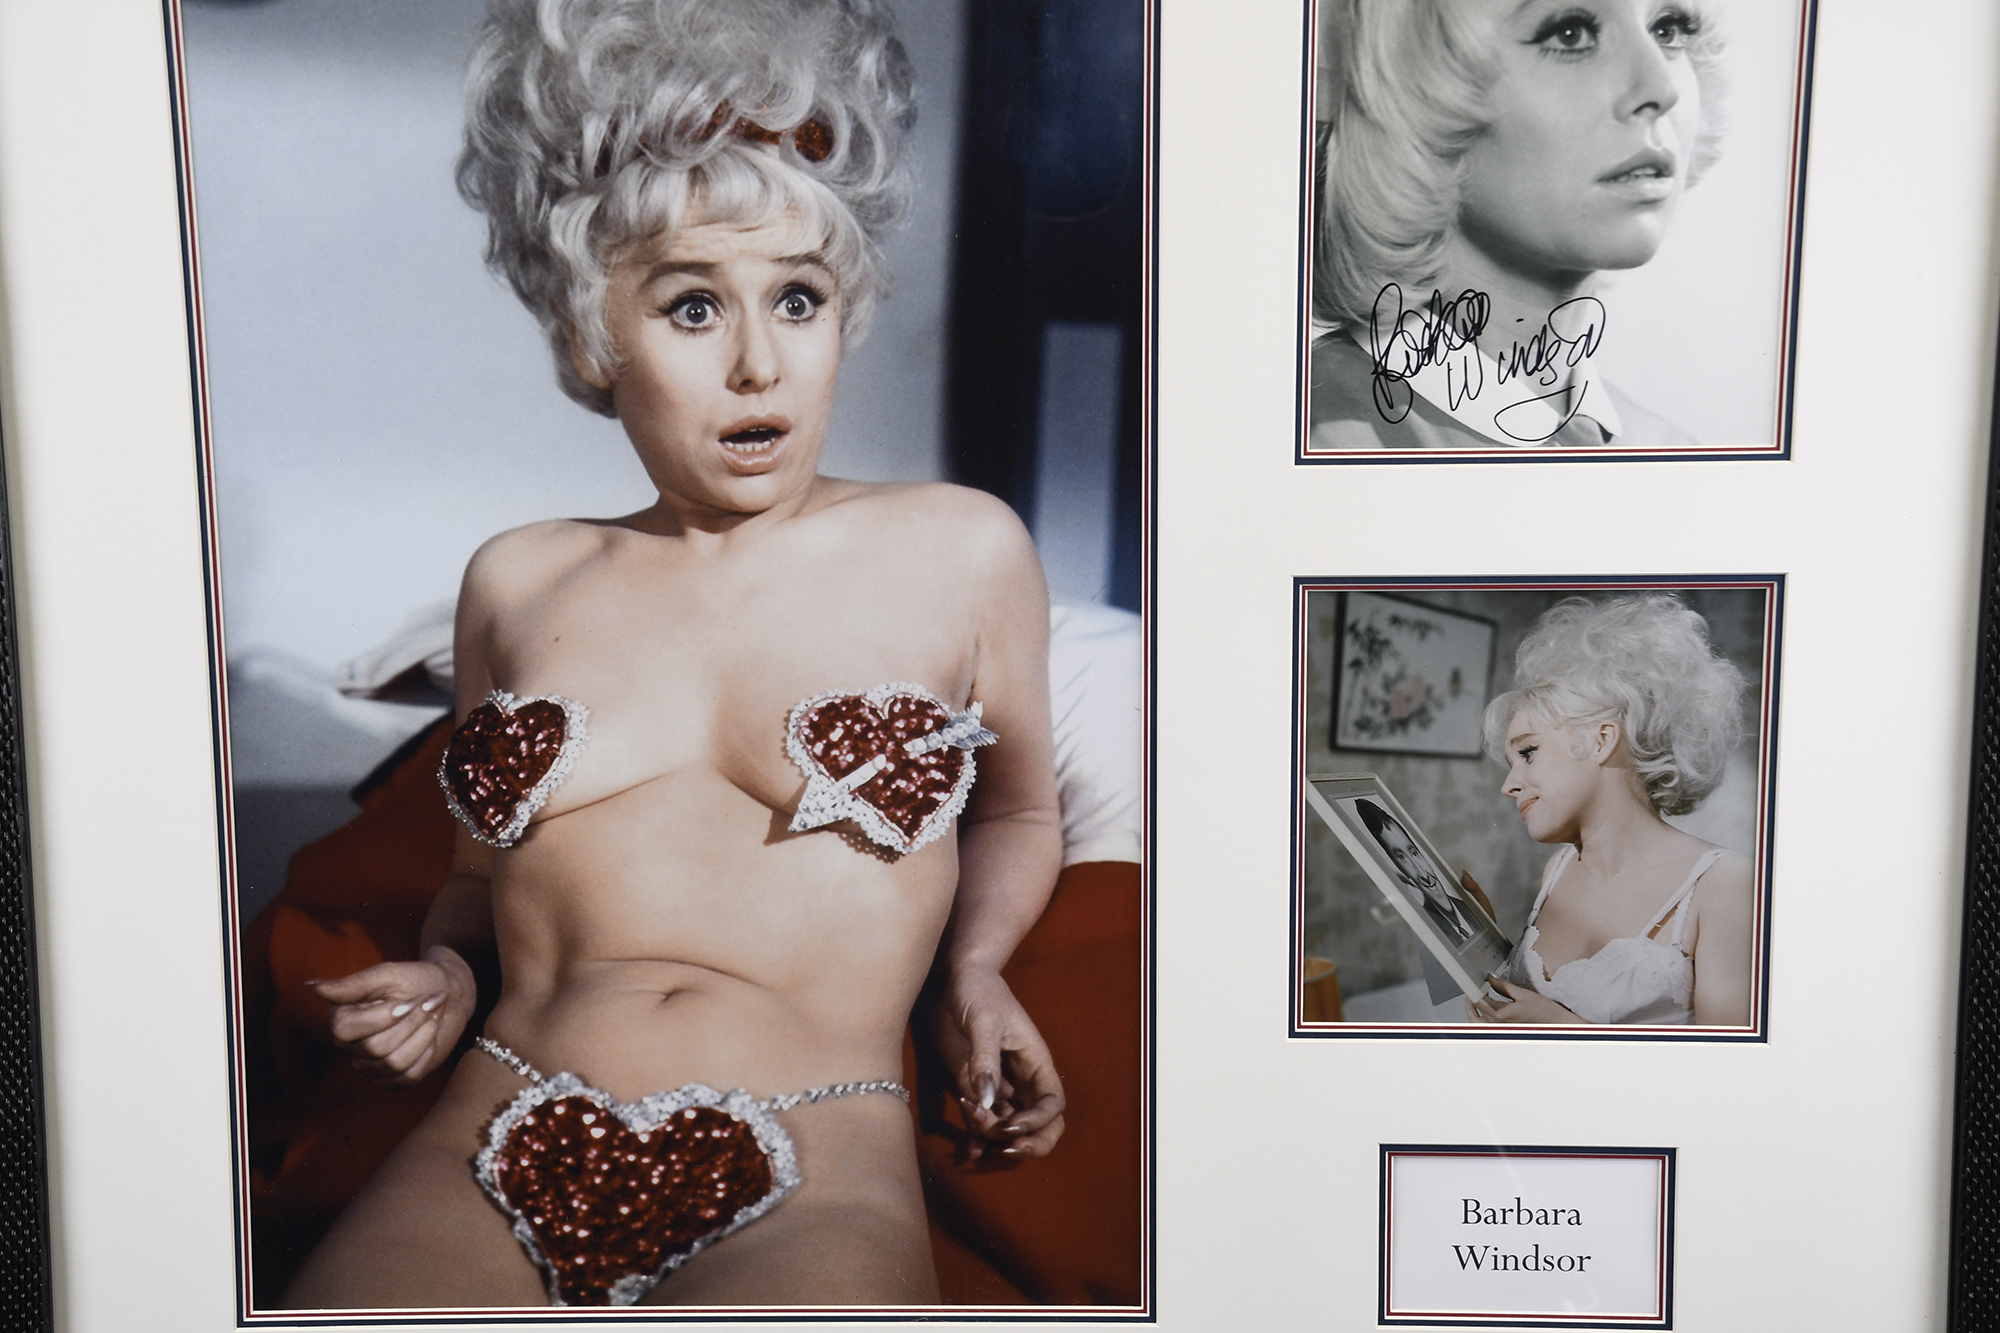 Barbara Windsor Signed Framed Memorabilia - Image 2 of 4